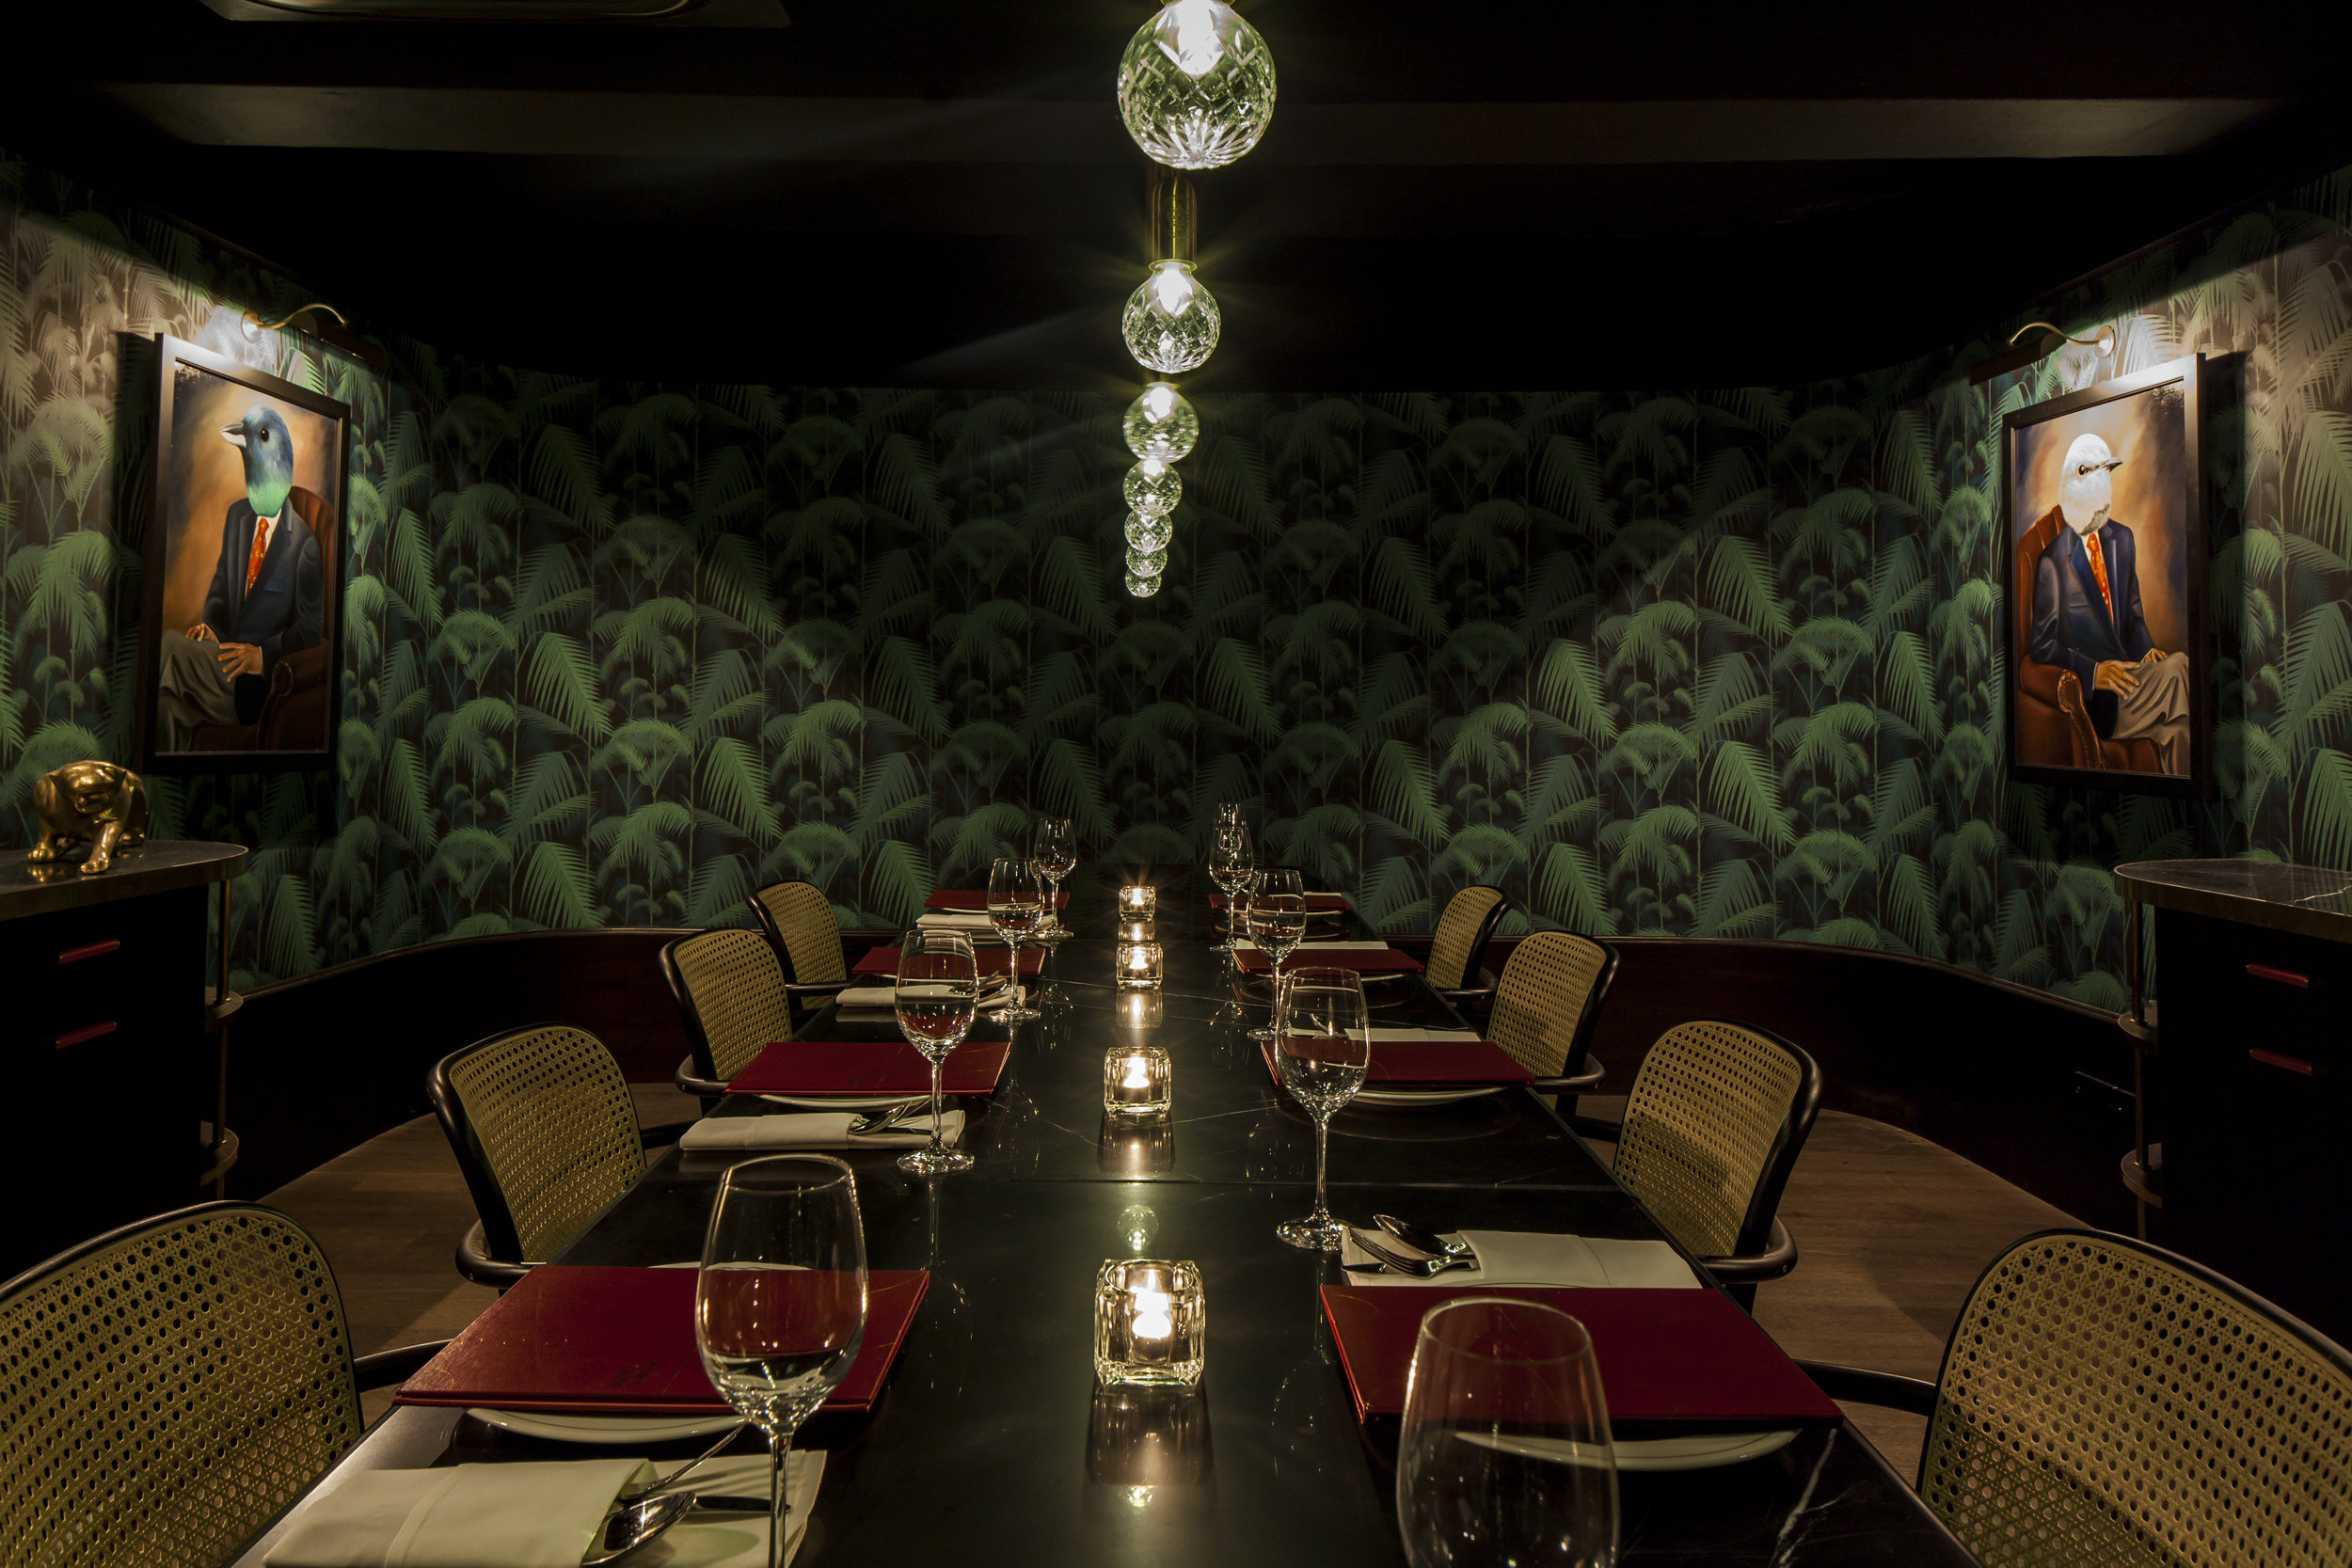 Private Dining Room Seated: 14  |  Standing: Not available